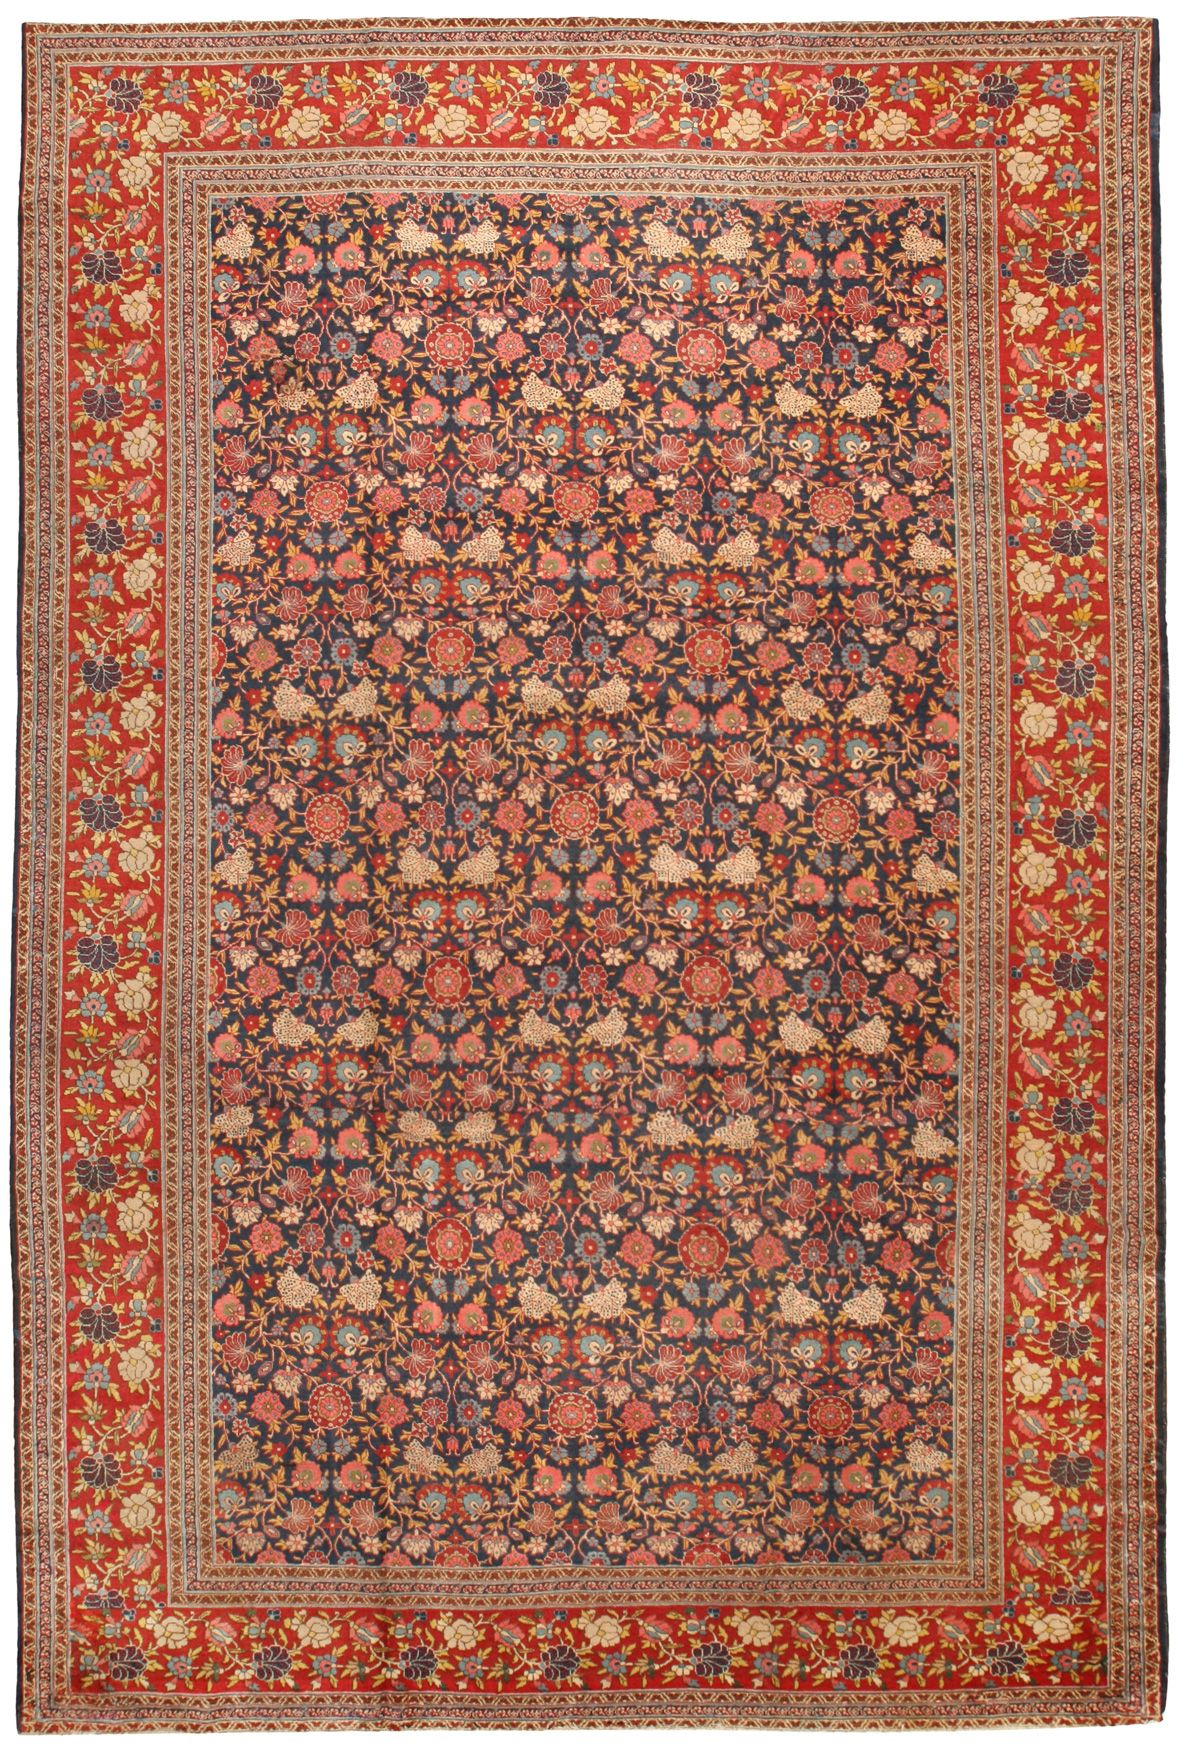 Antique Tabriz Carpet 11.9 X 17.11 - Antique Rugs and Carpets